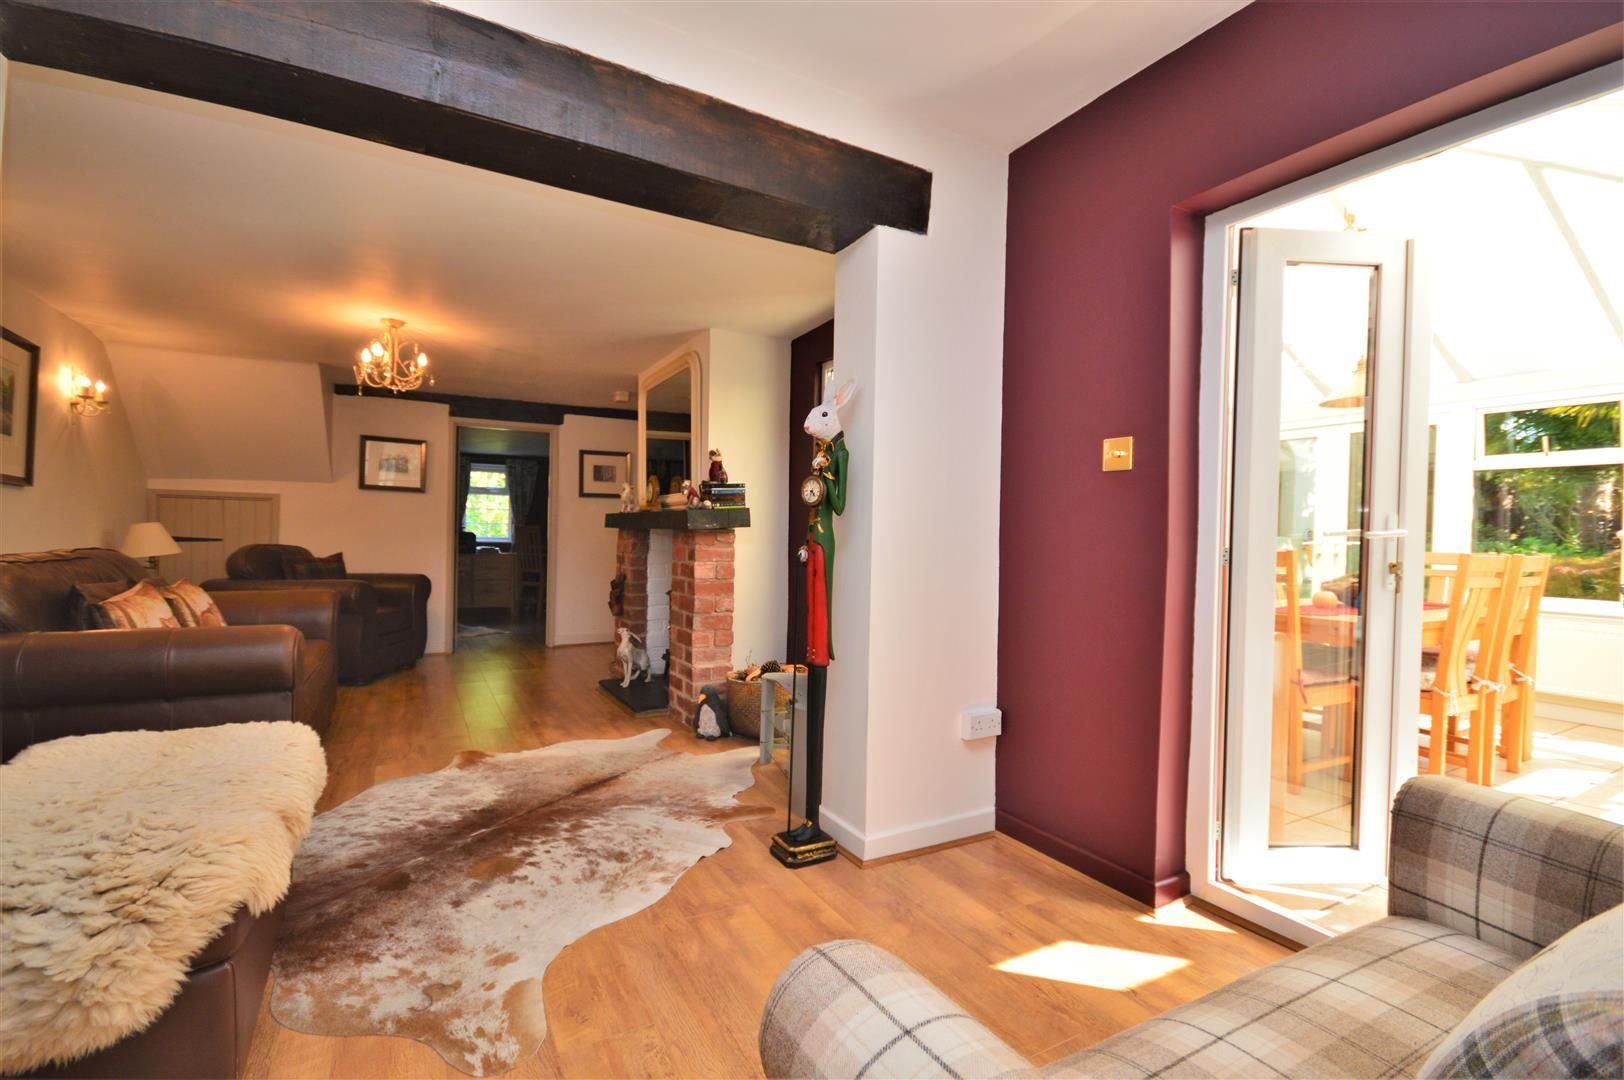 3 bed semi-detached for sale in Stretton Sugwas  - Property Image 4